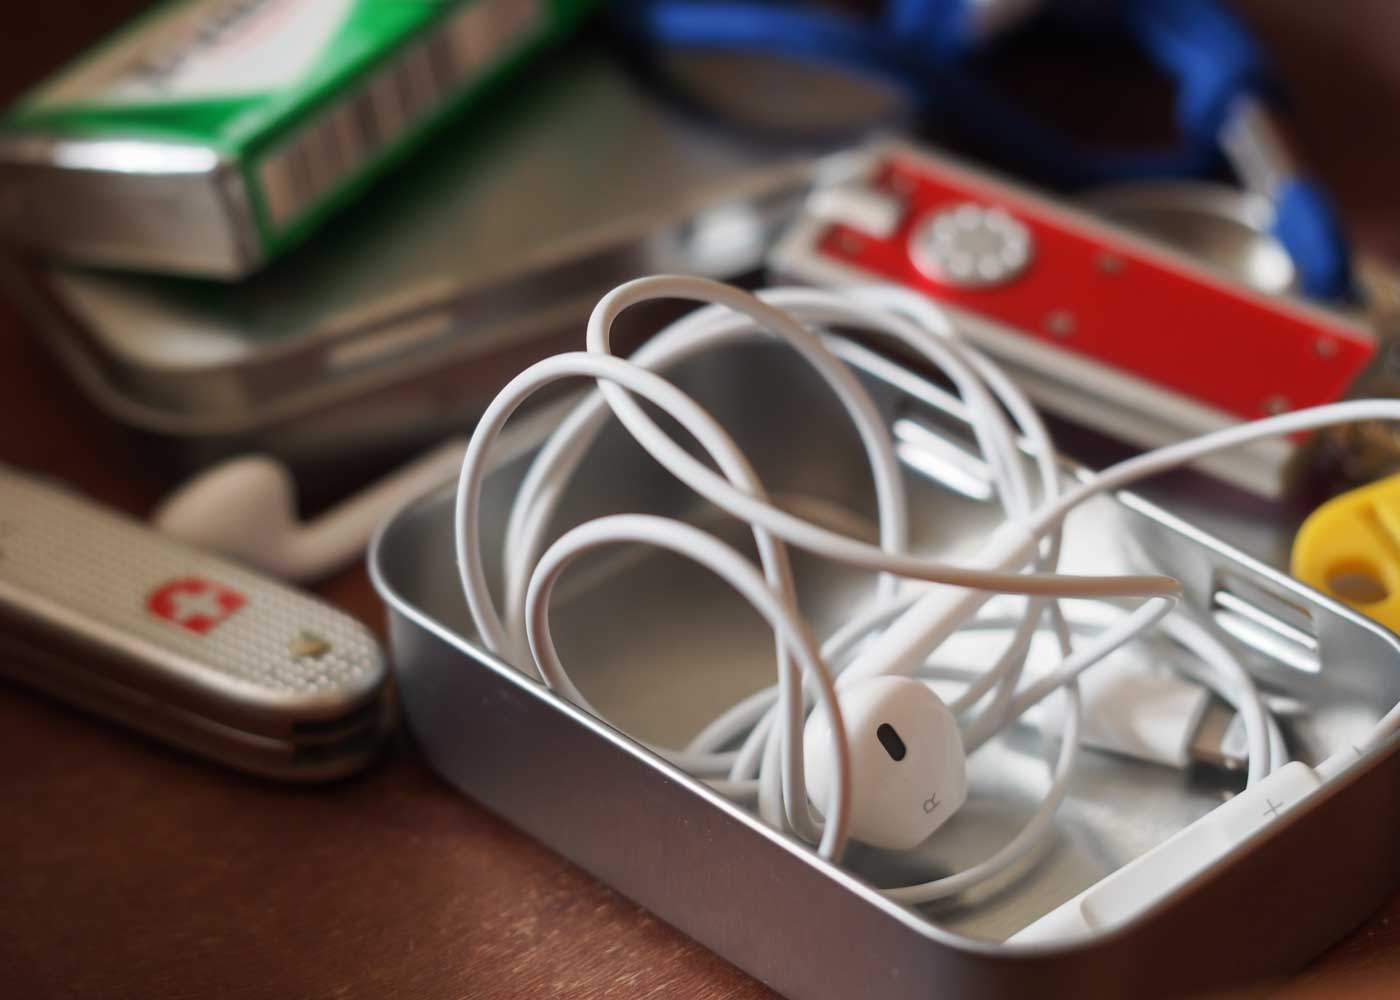 Protect and organize small items in your purse or handbag with small tins - be it earbuds, or chewing gum.